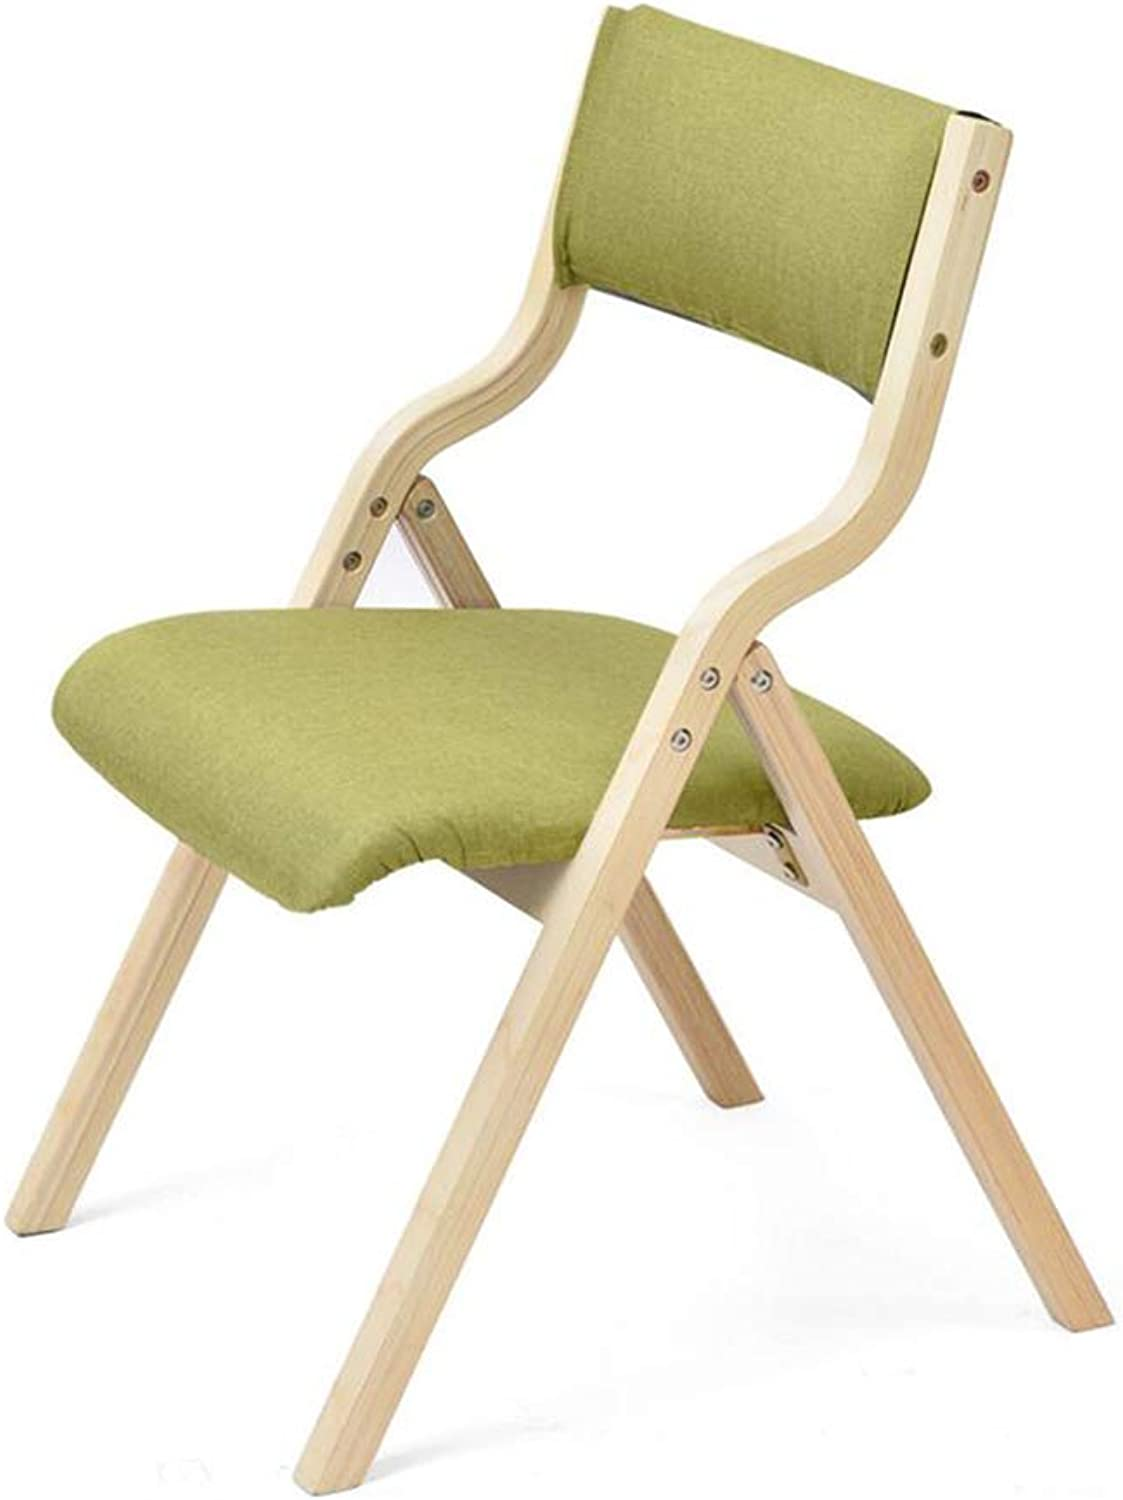 FENGFAN Wooden Folding Chair Dinning Chair Home Office Solid Hardwood Frame Foldable (color   C)